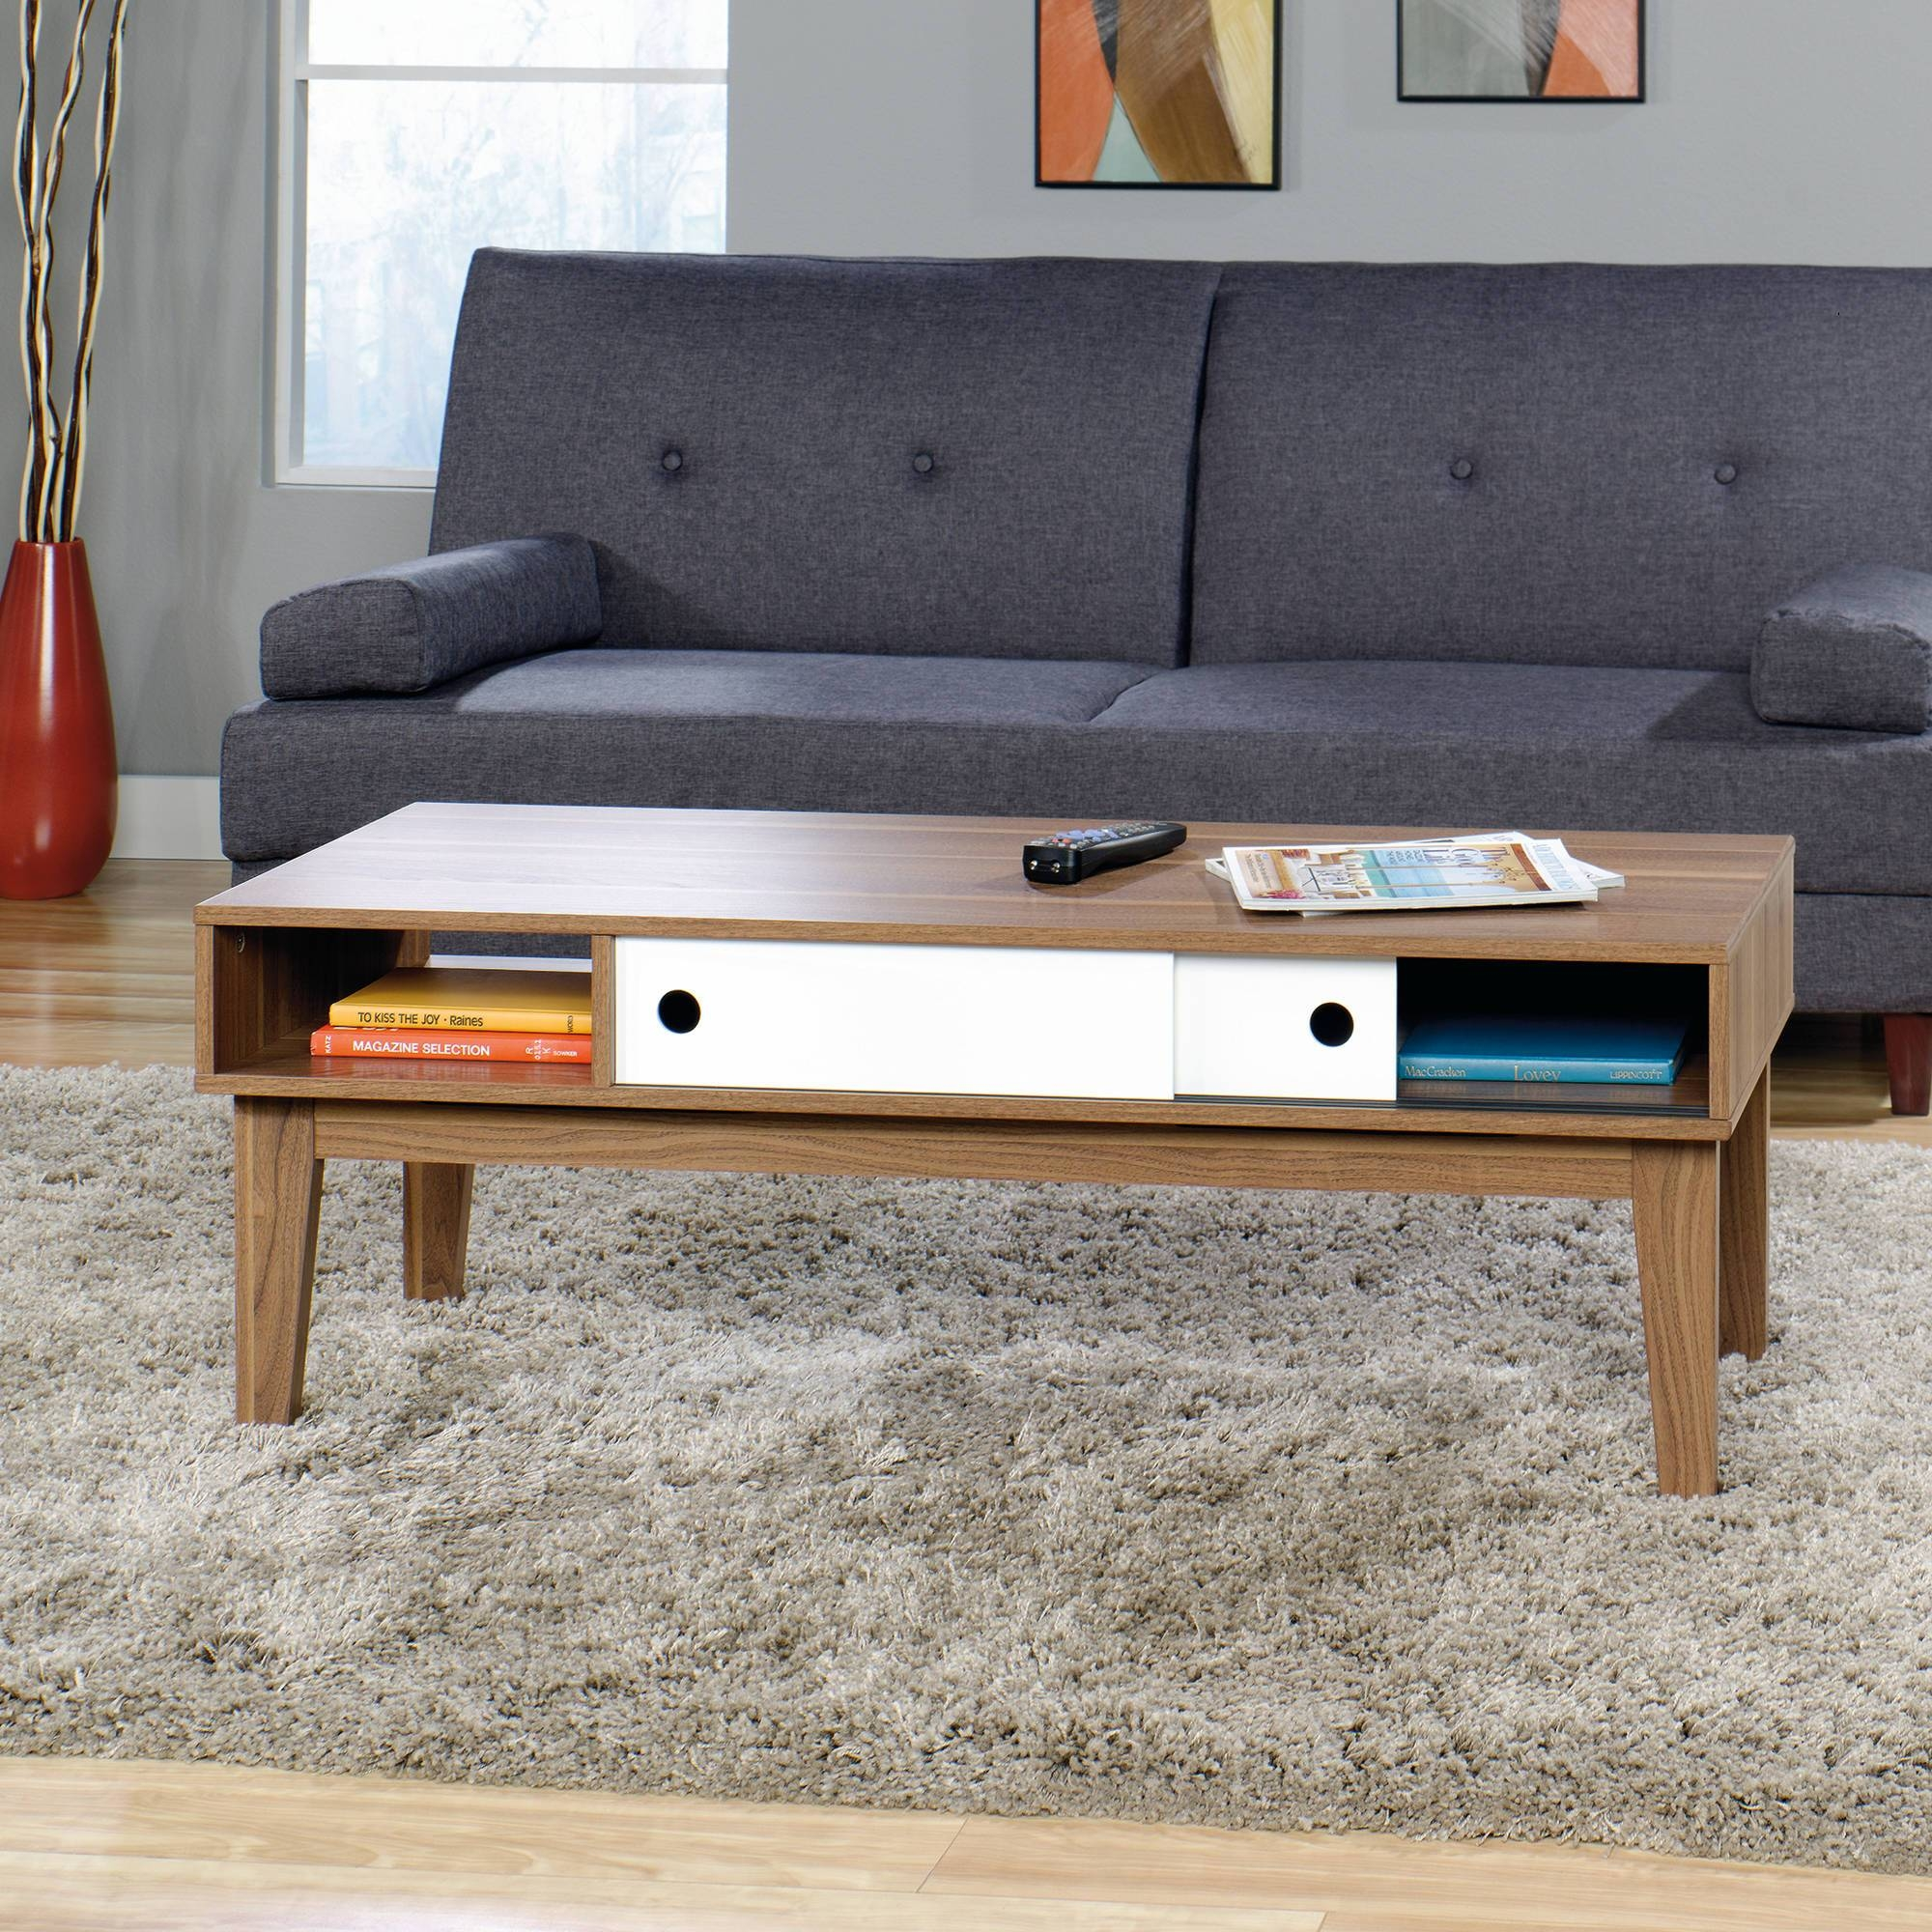 Sauder Soft Modern Coffee Table, Walnut Finish With White Accent Regarding Modern Coffee Table (View 11 of 15)